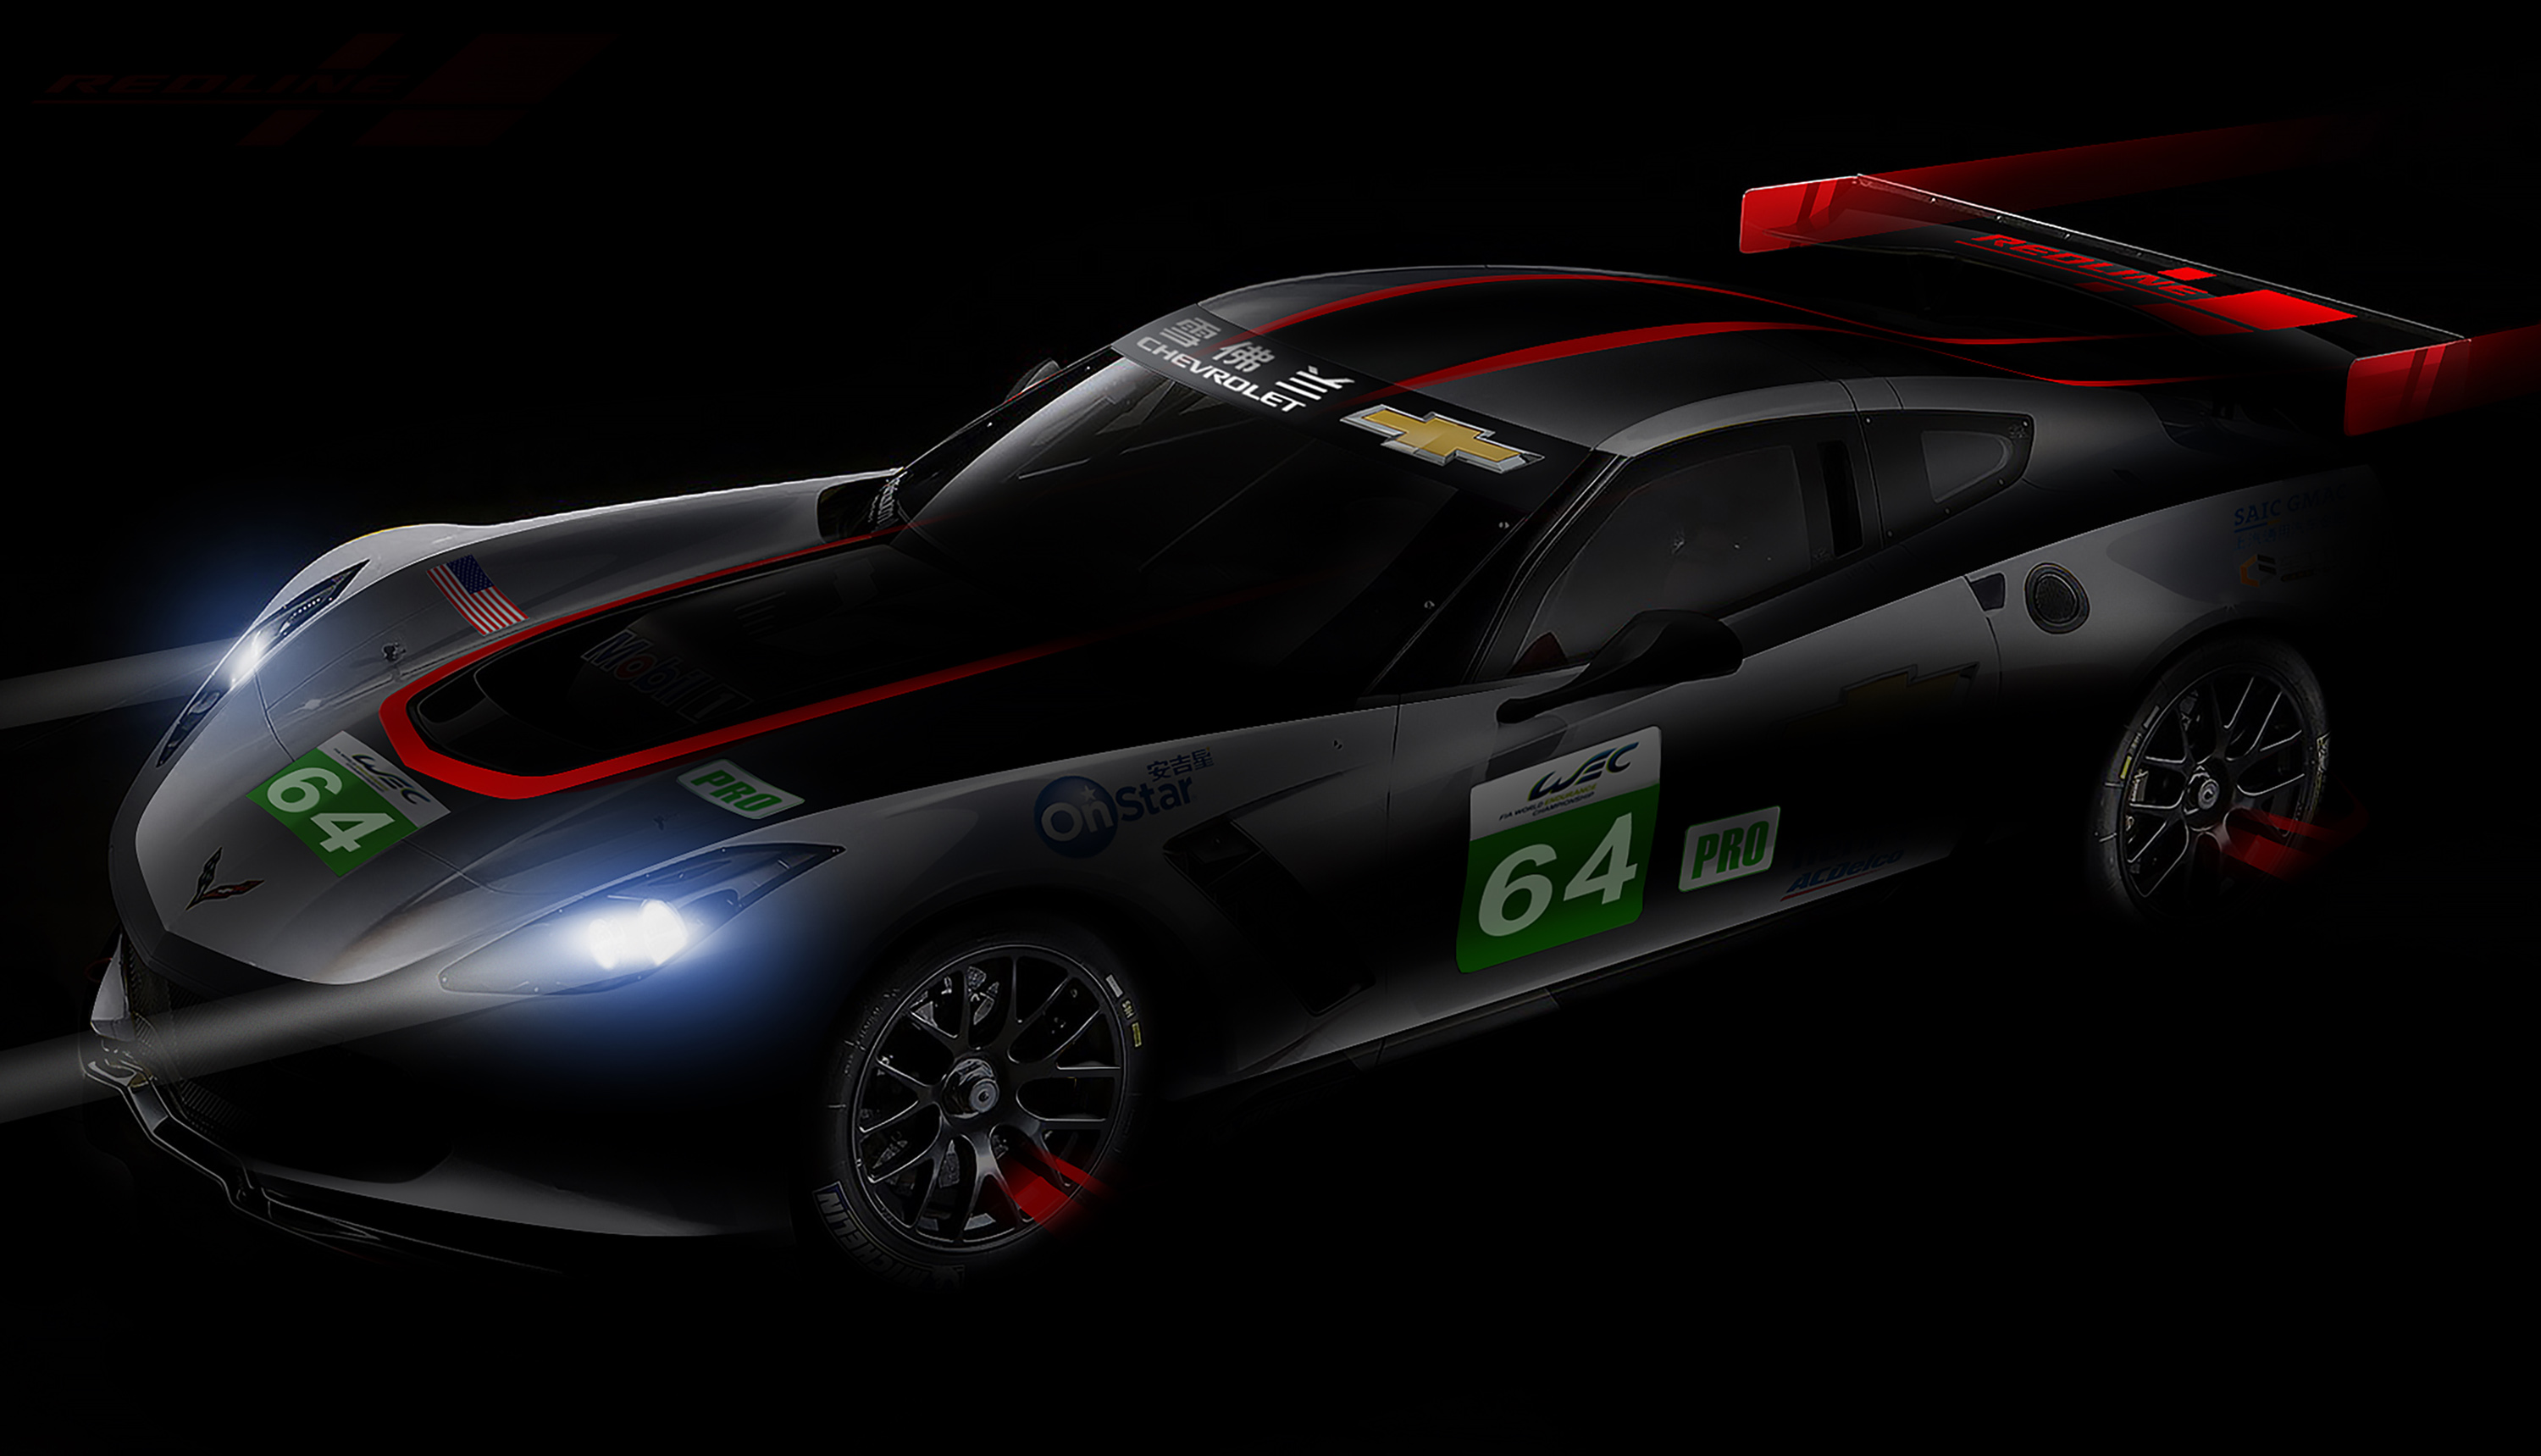 corvette c7 r to race in wec in shanghai endurance info english spoken. Black Bedroom Furniture Sets. Home Design Ideas